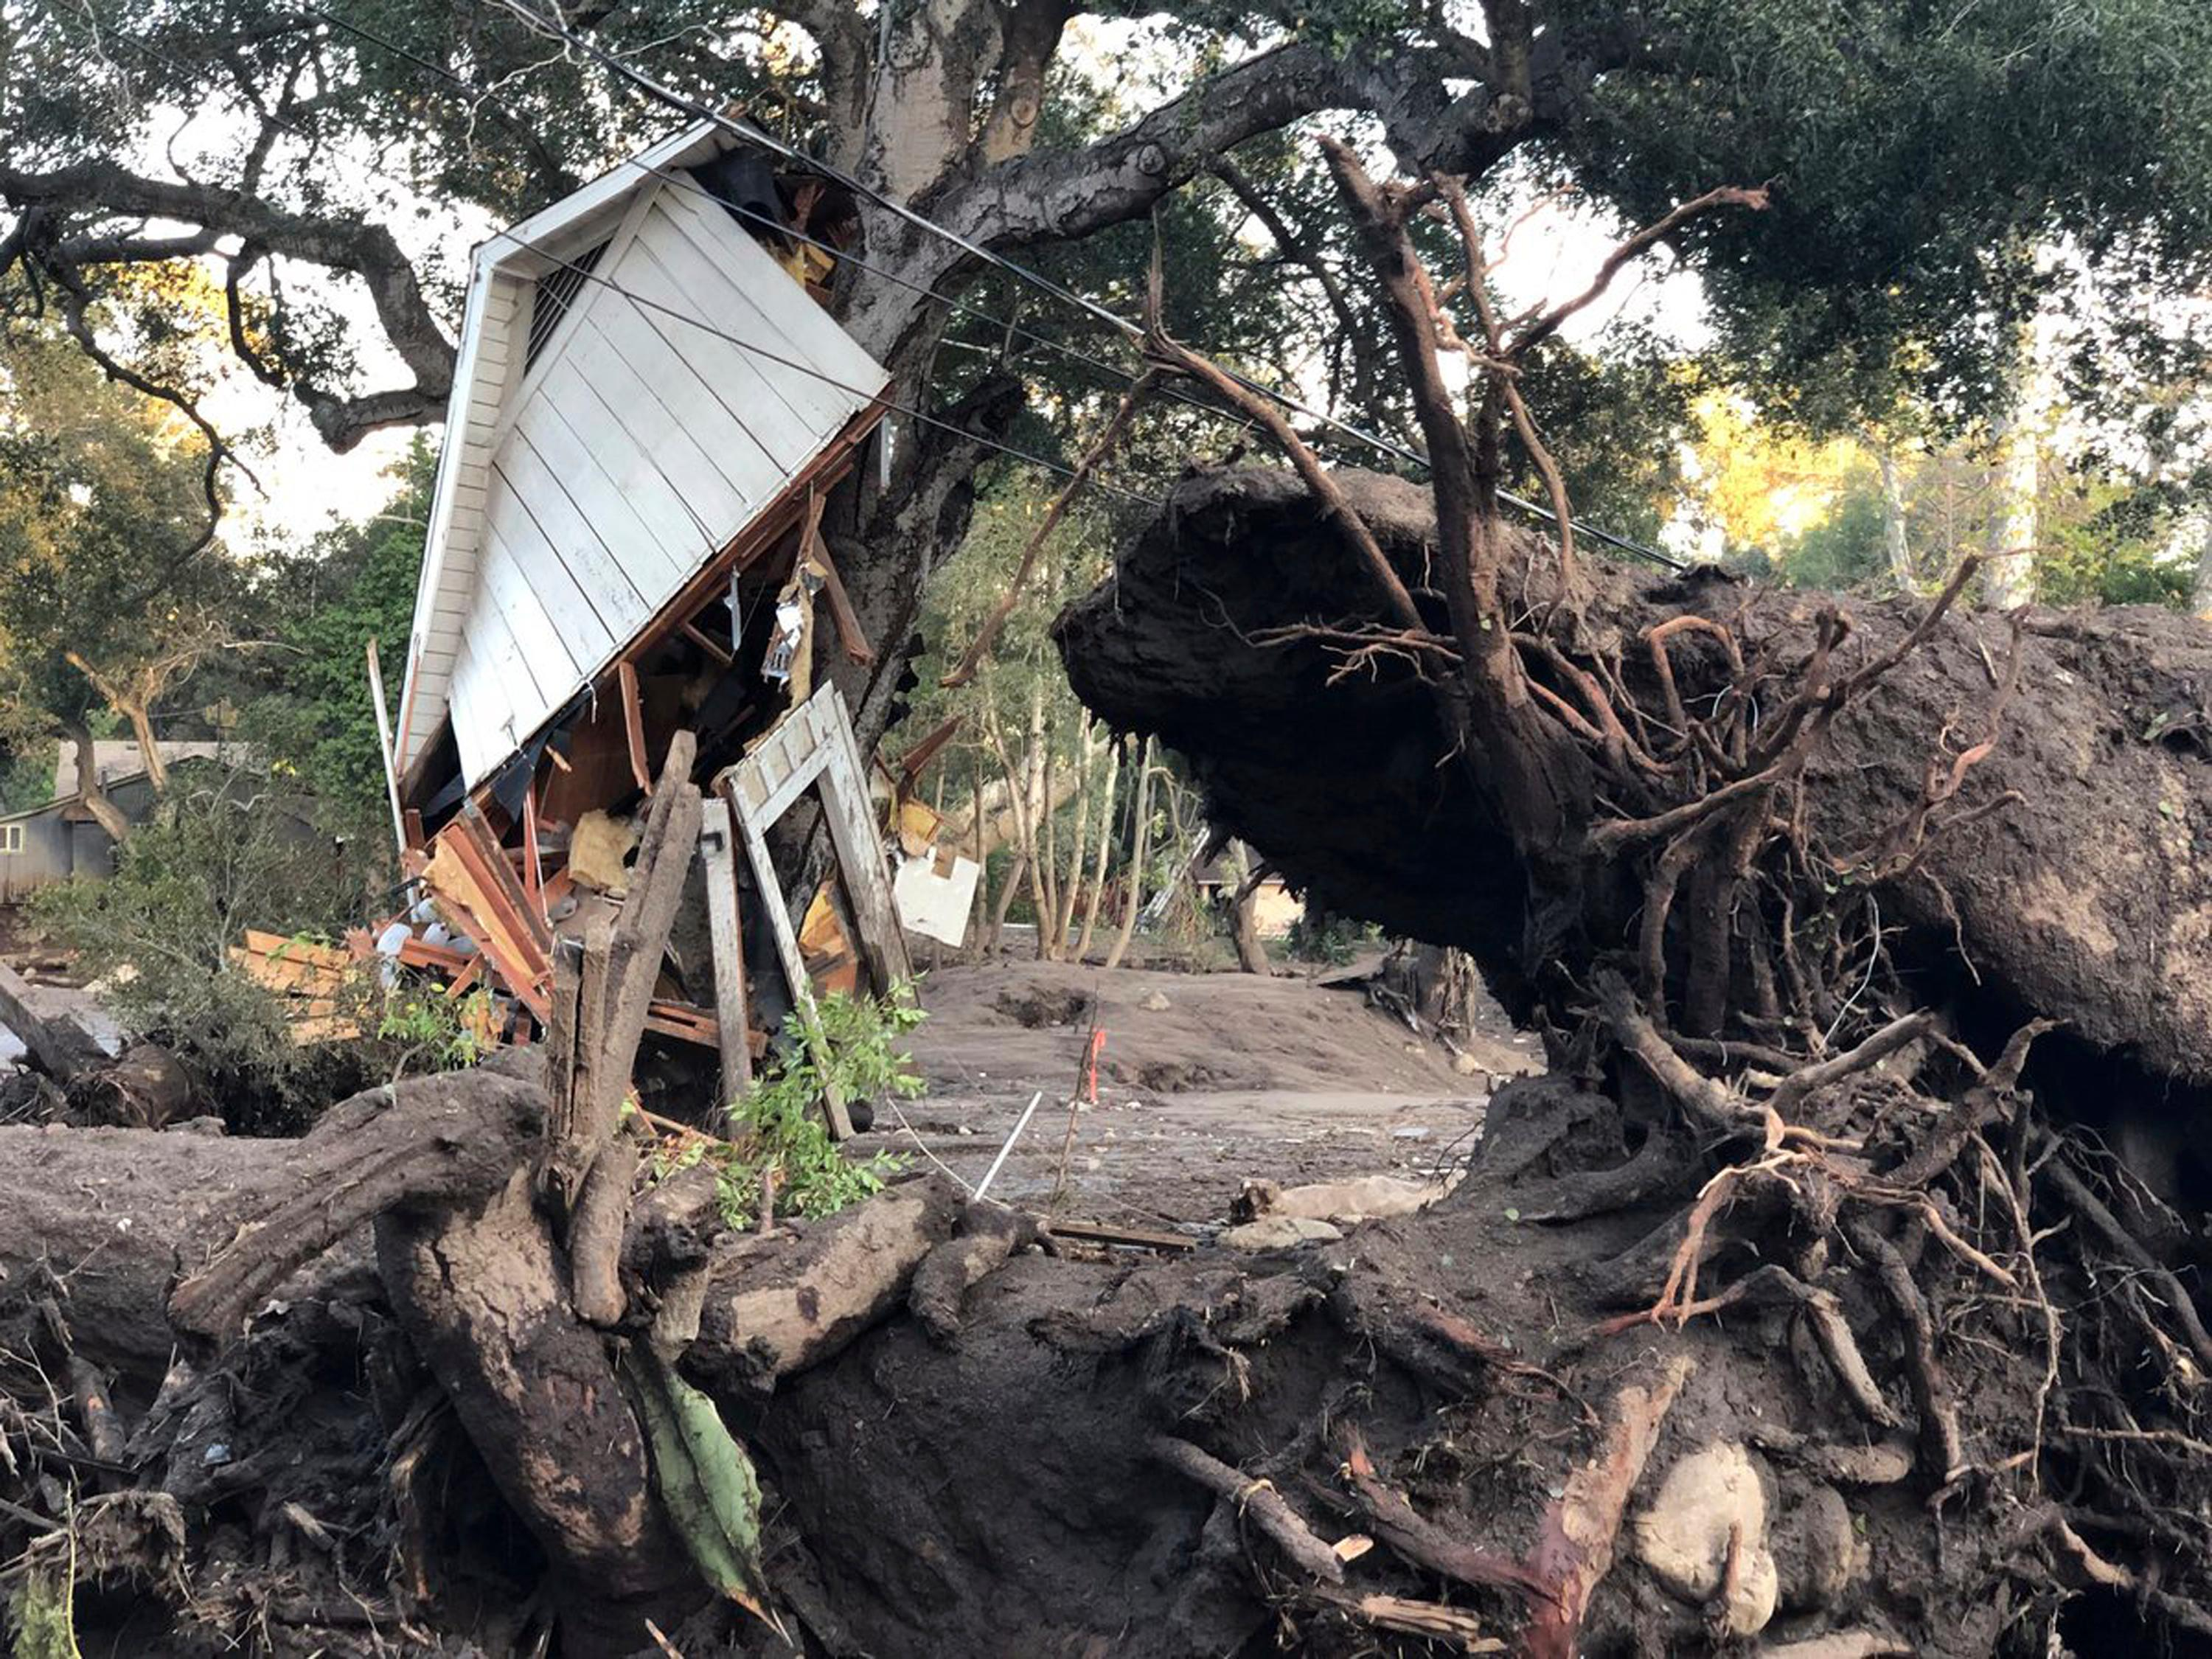 This photo provided by the Santa Barbara County Fire Department shows mud, boulders, and debris that destroyed homes that lined Montecito Creek near East Valley Road in Montecito, Calif., Wednesday, Jan. 10, 2018. Anxious family members awaited word on loved ones Wednesday as rescue crews searched grimy debris and ruins for more than a dozen people missing after mudslides in Southern California on Tuesday destroyed over a 100 houses, swept cars to the beach and left more than a dozen victims dead.  (Mike Eliason/Santa Barbara County Fire Department via AP)